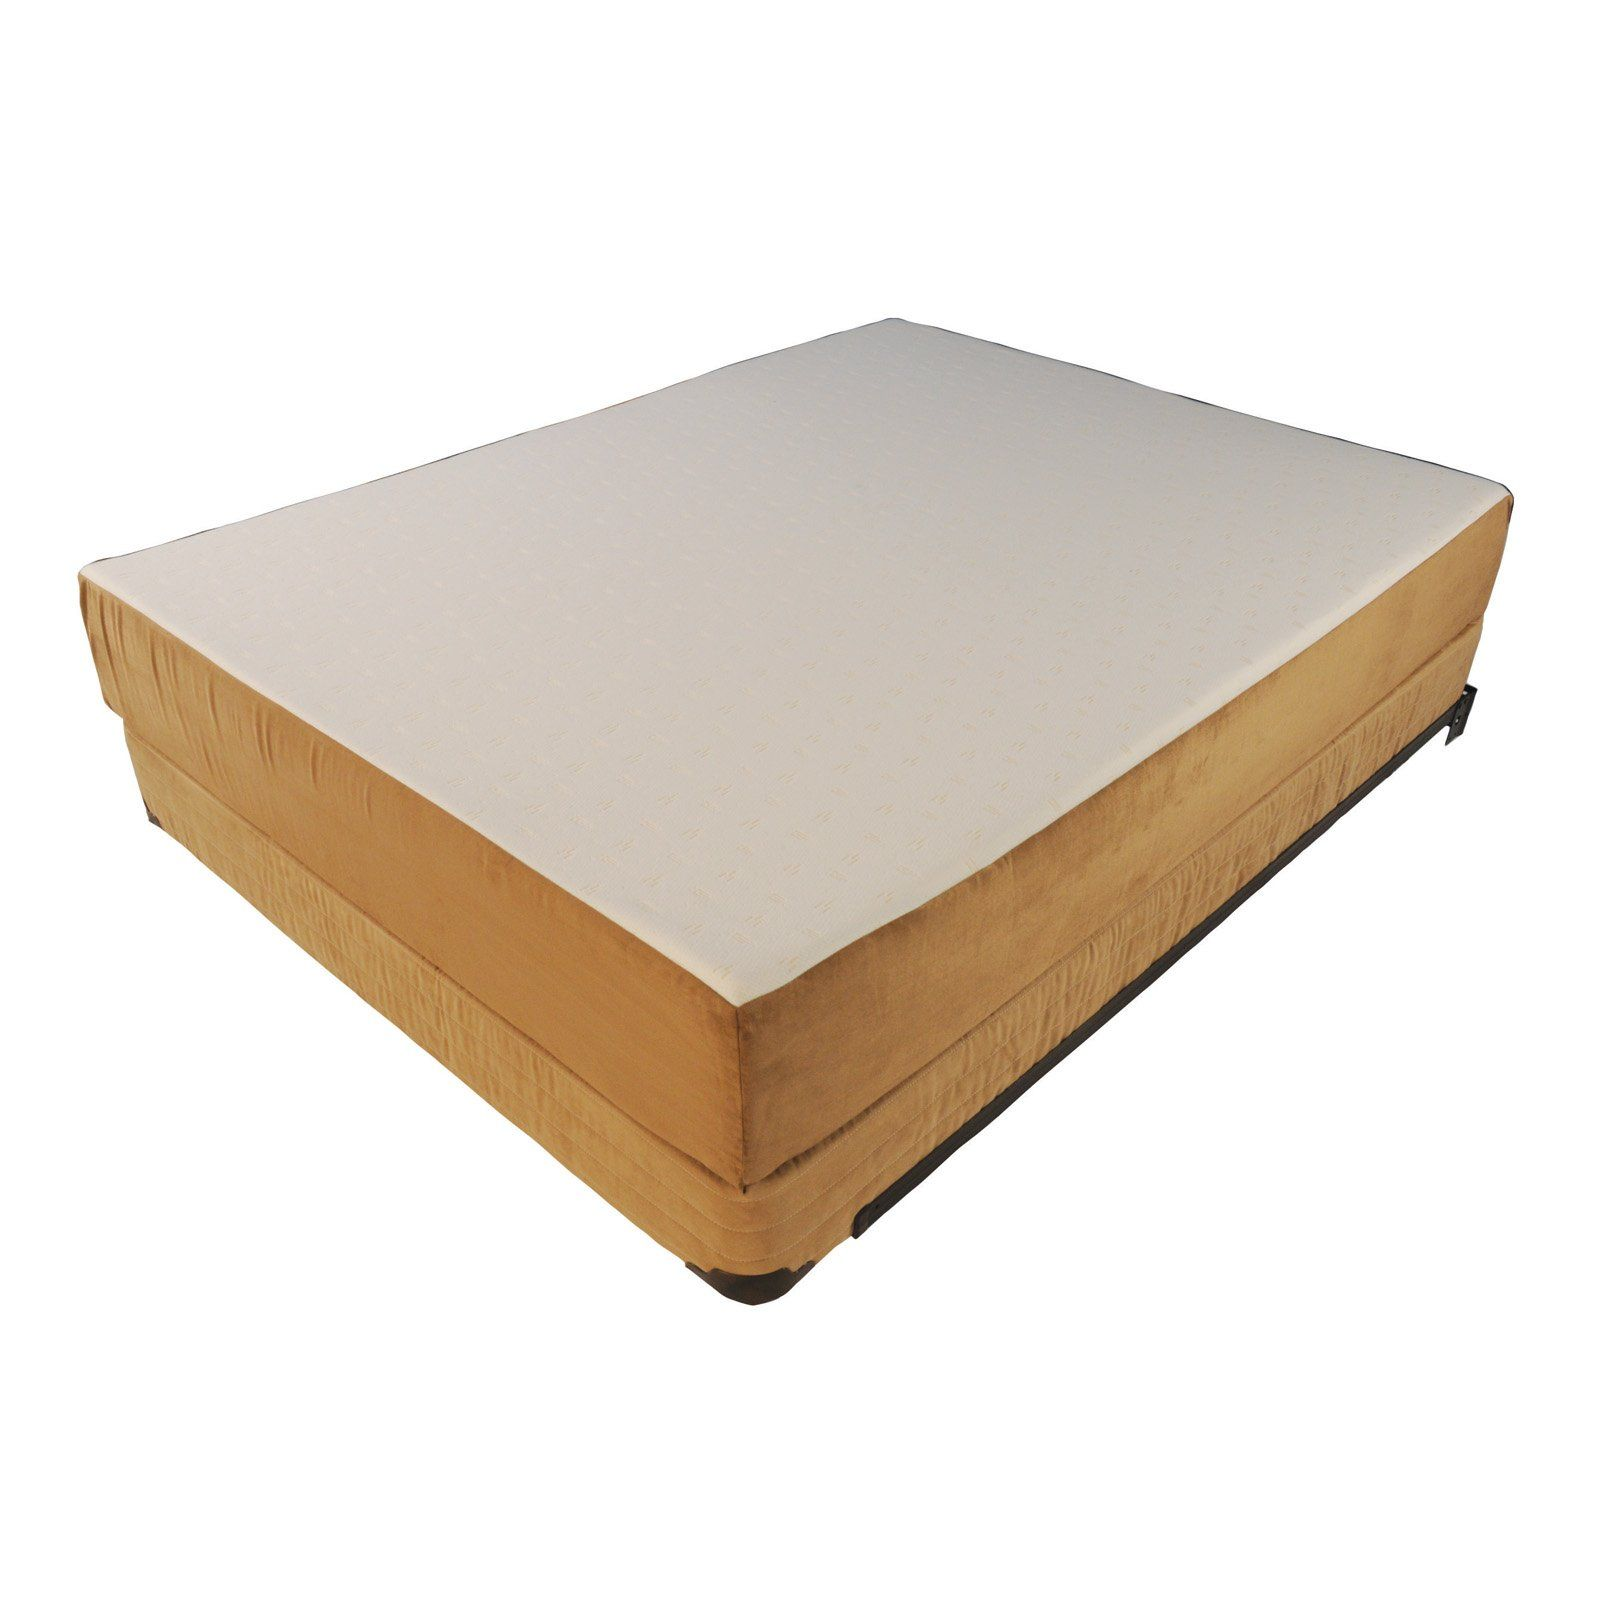 Glideaway Renew 10 in. Luxury Memory Foam Mattress